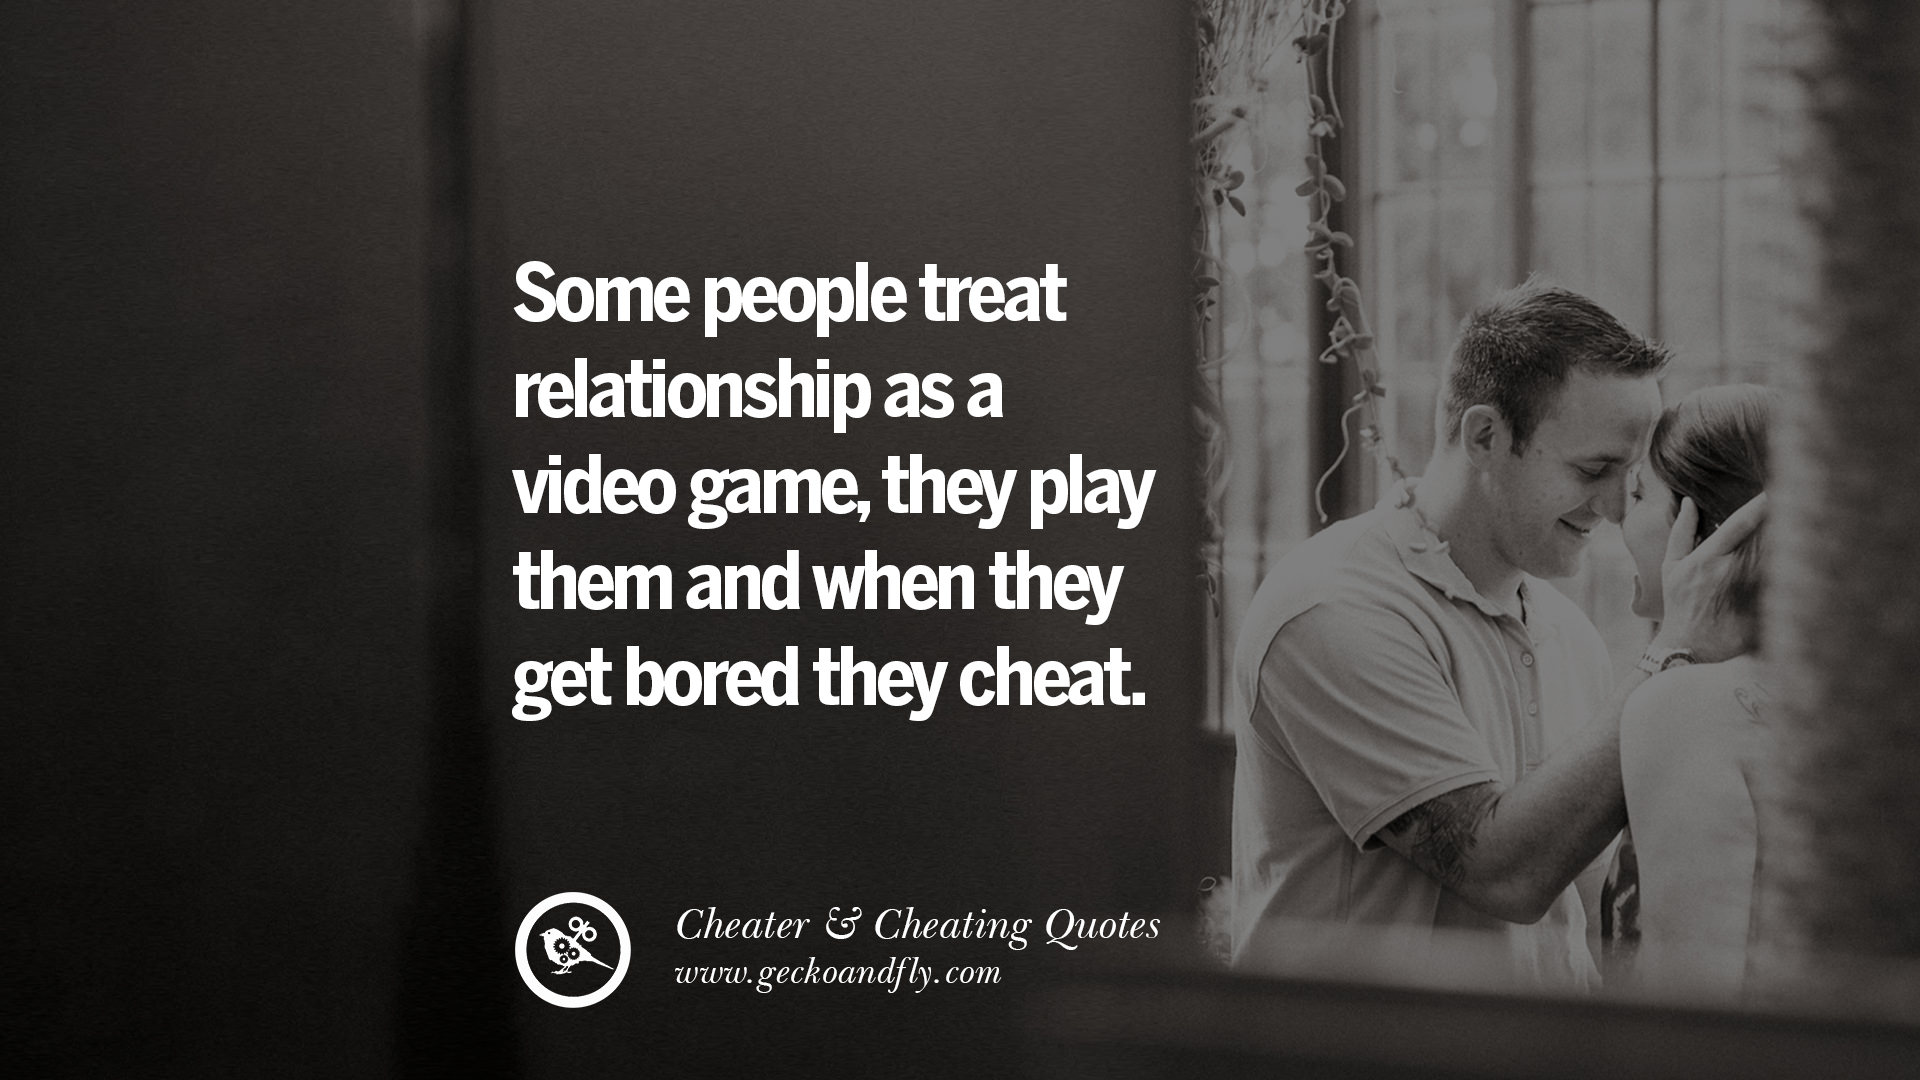 cheating in relationship images and quotes